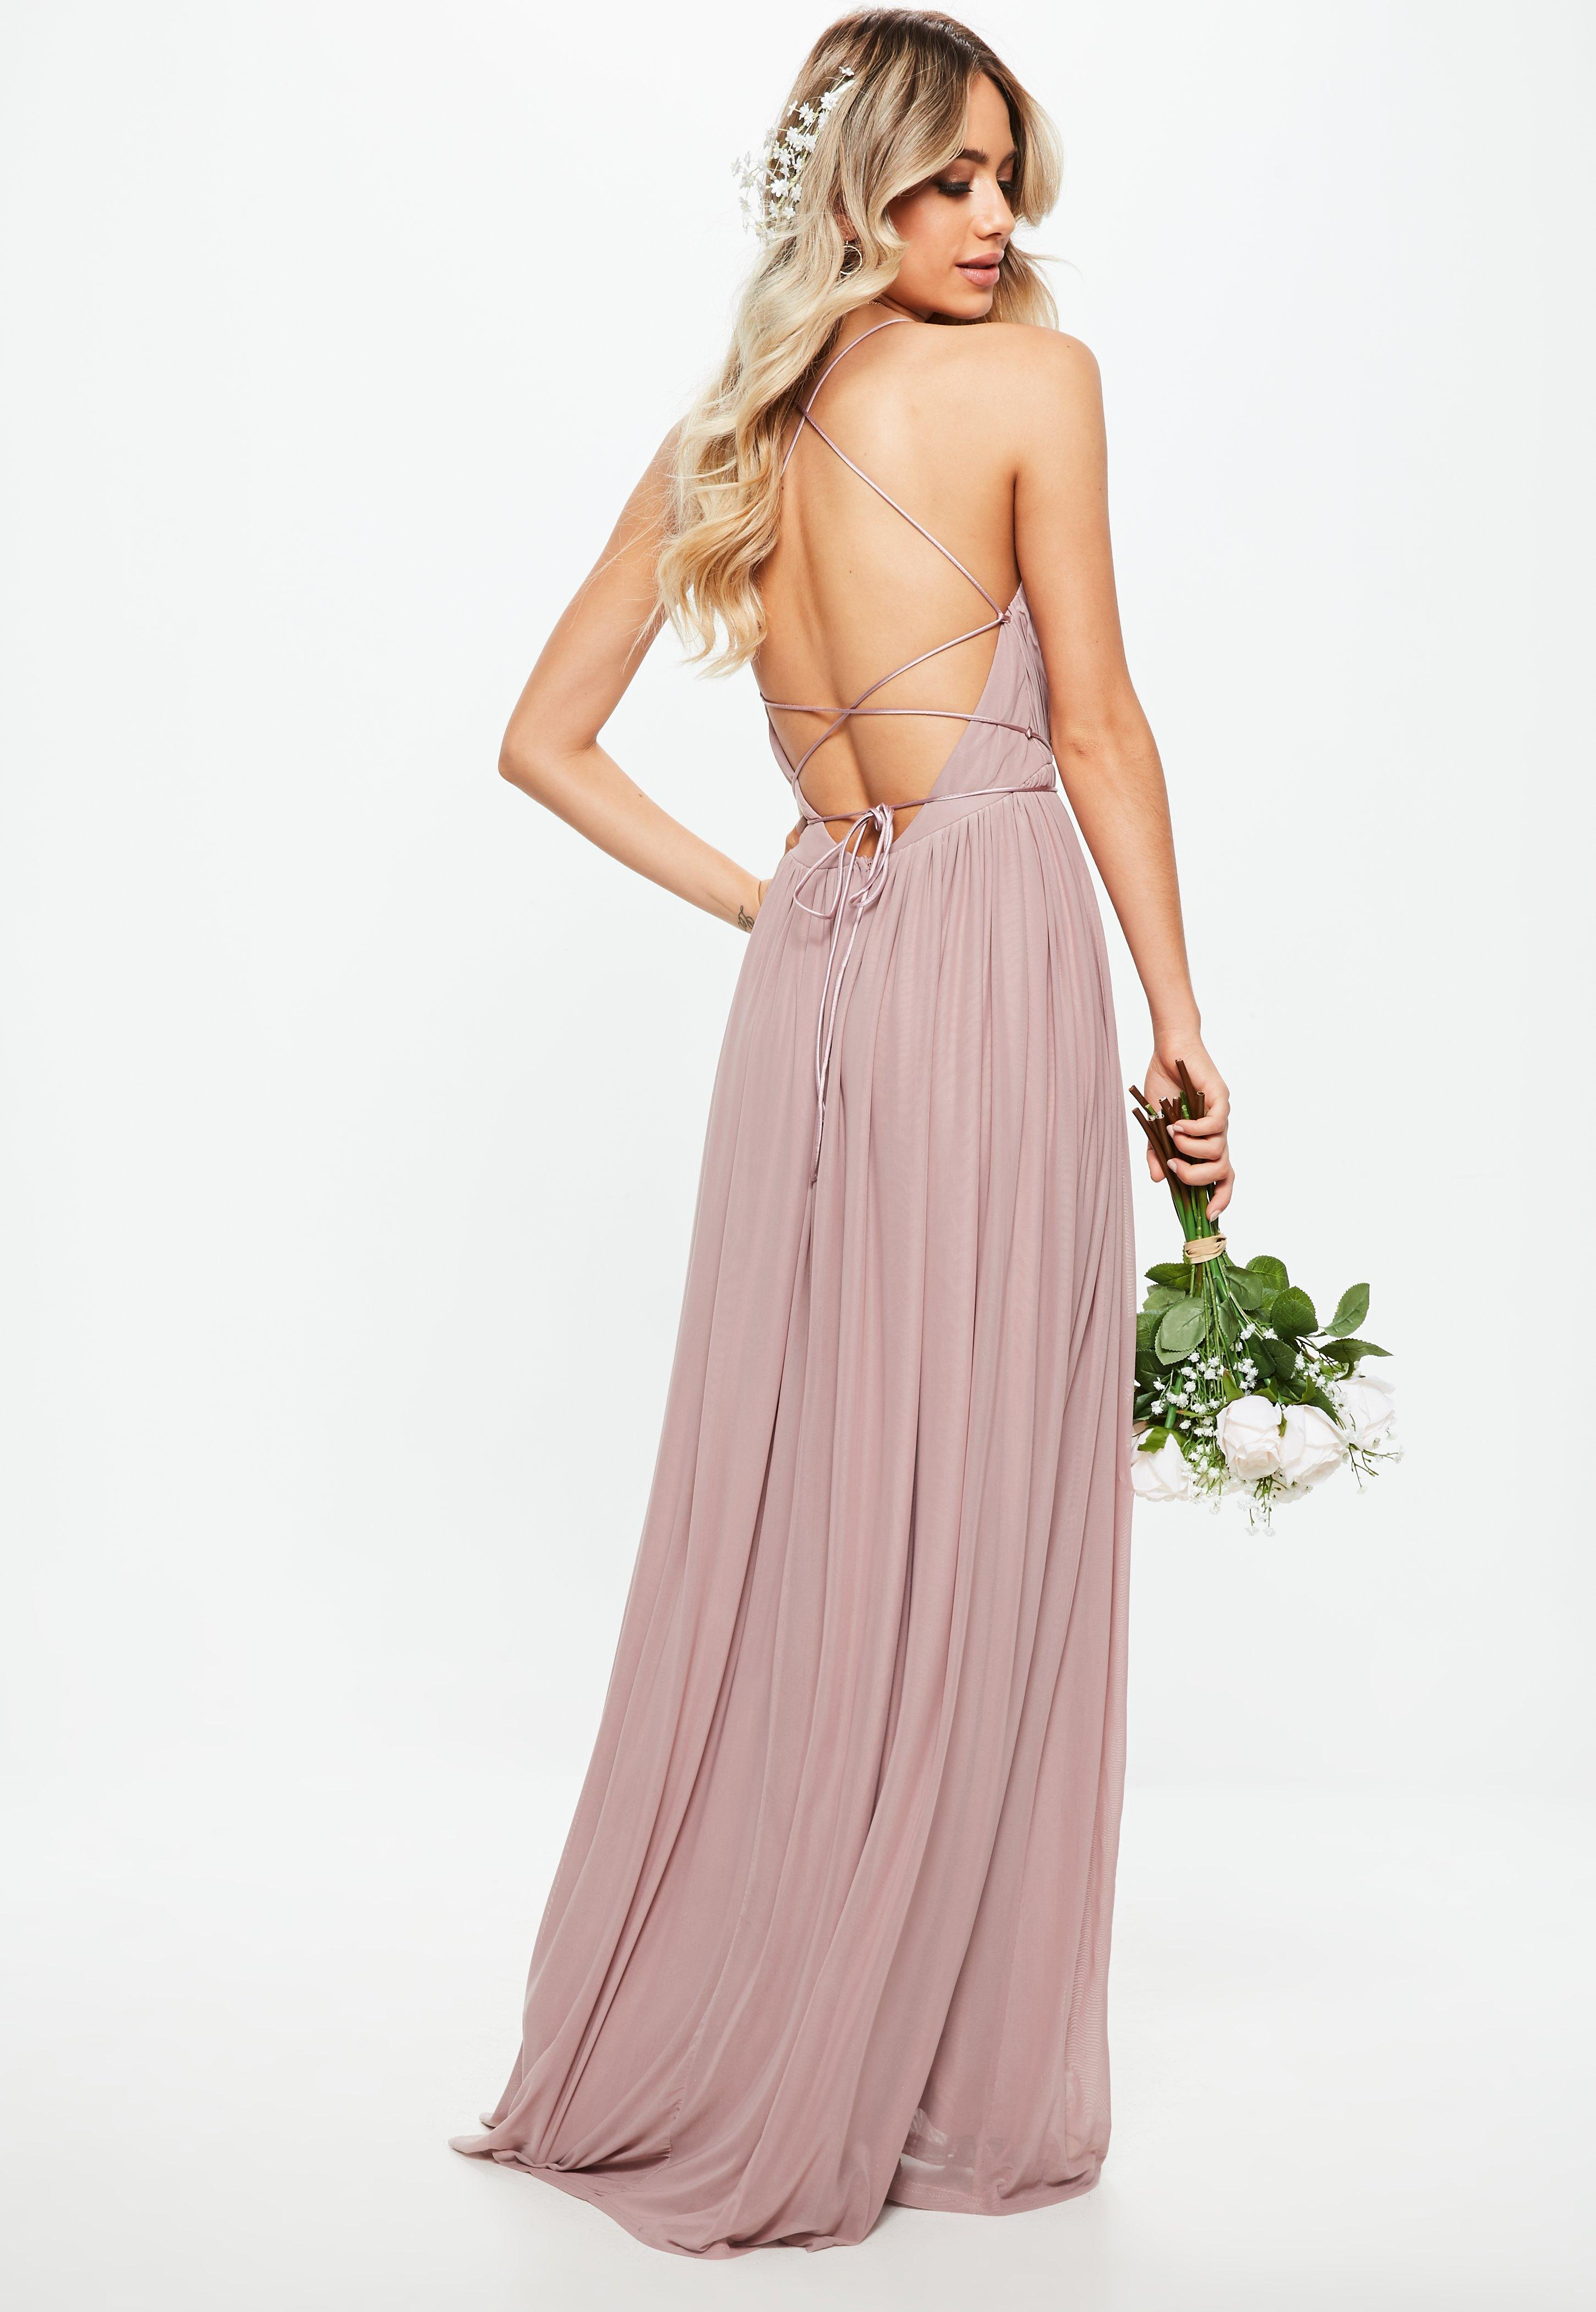 Prom Dresses 2018 | Dance Dresses from $18 - Missguided